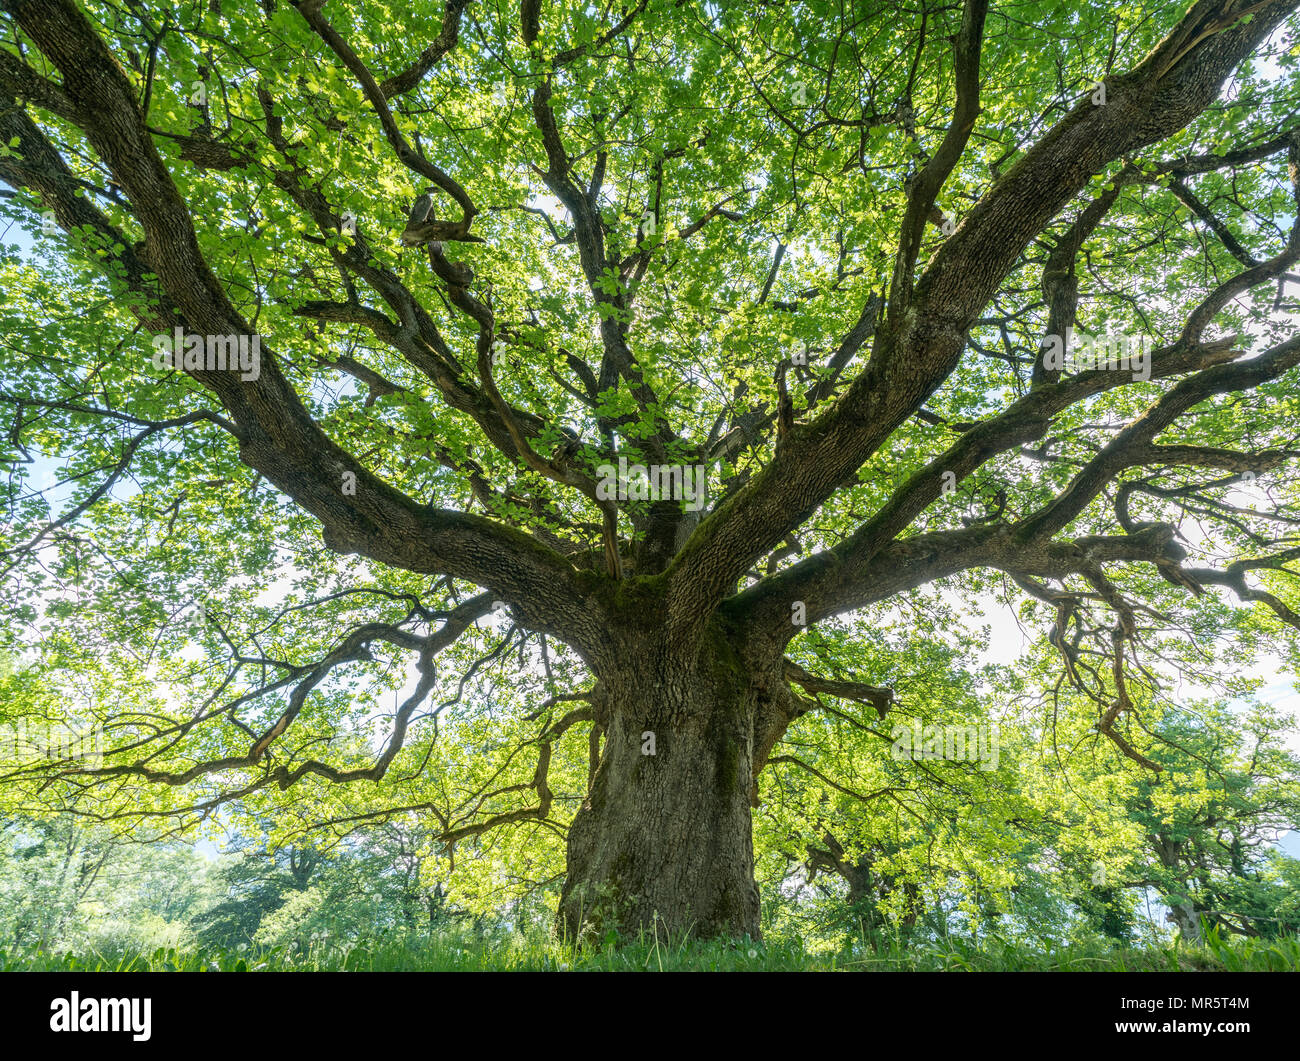 majestic old oak giving shade to a spring meadow - Stock Image